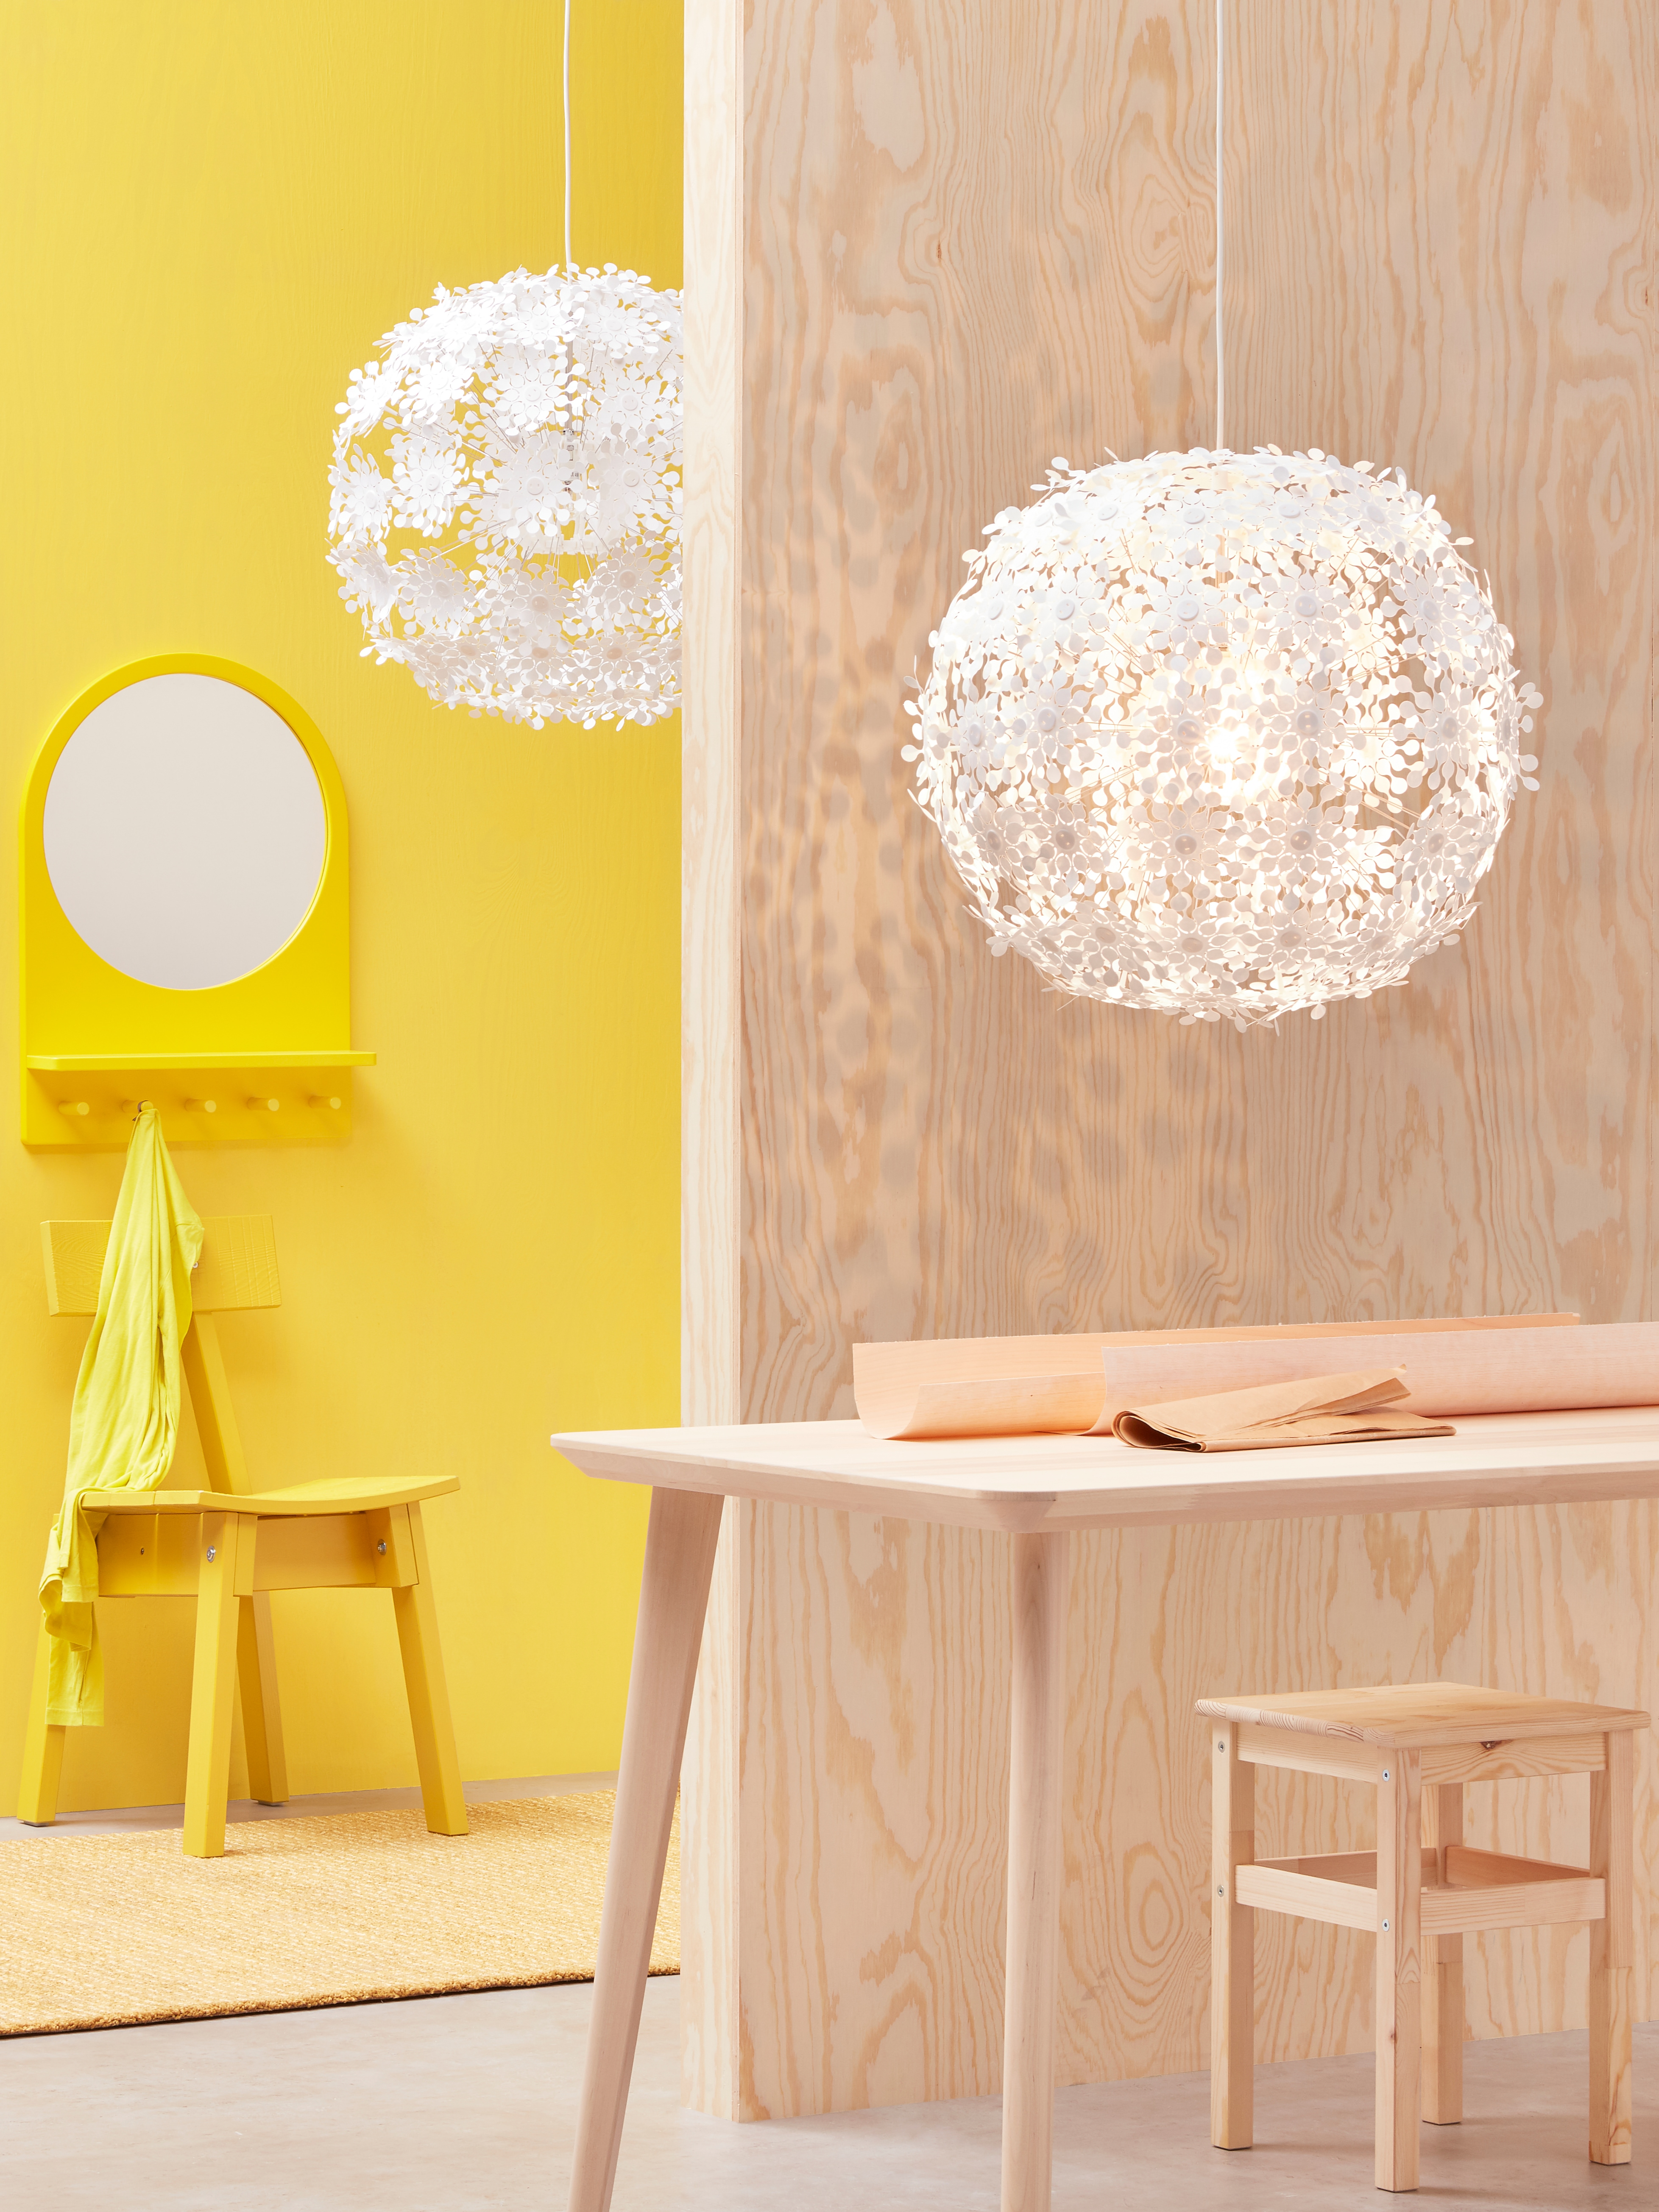 A hallway in the background with a workspace in the foreground, and each has a white GRIMSÅS pendant lamp hanging overhead.